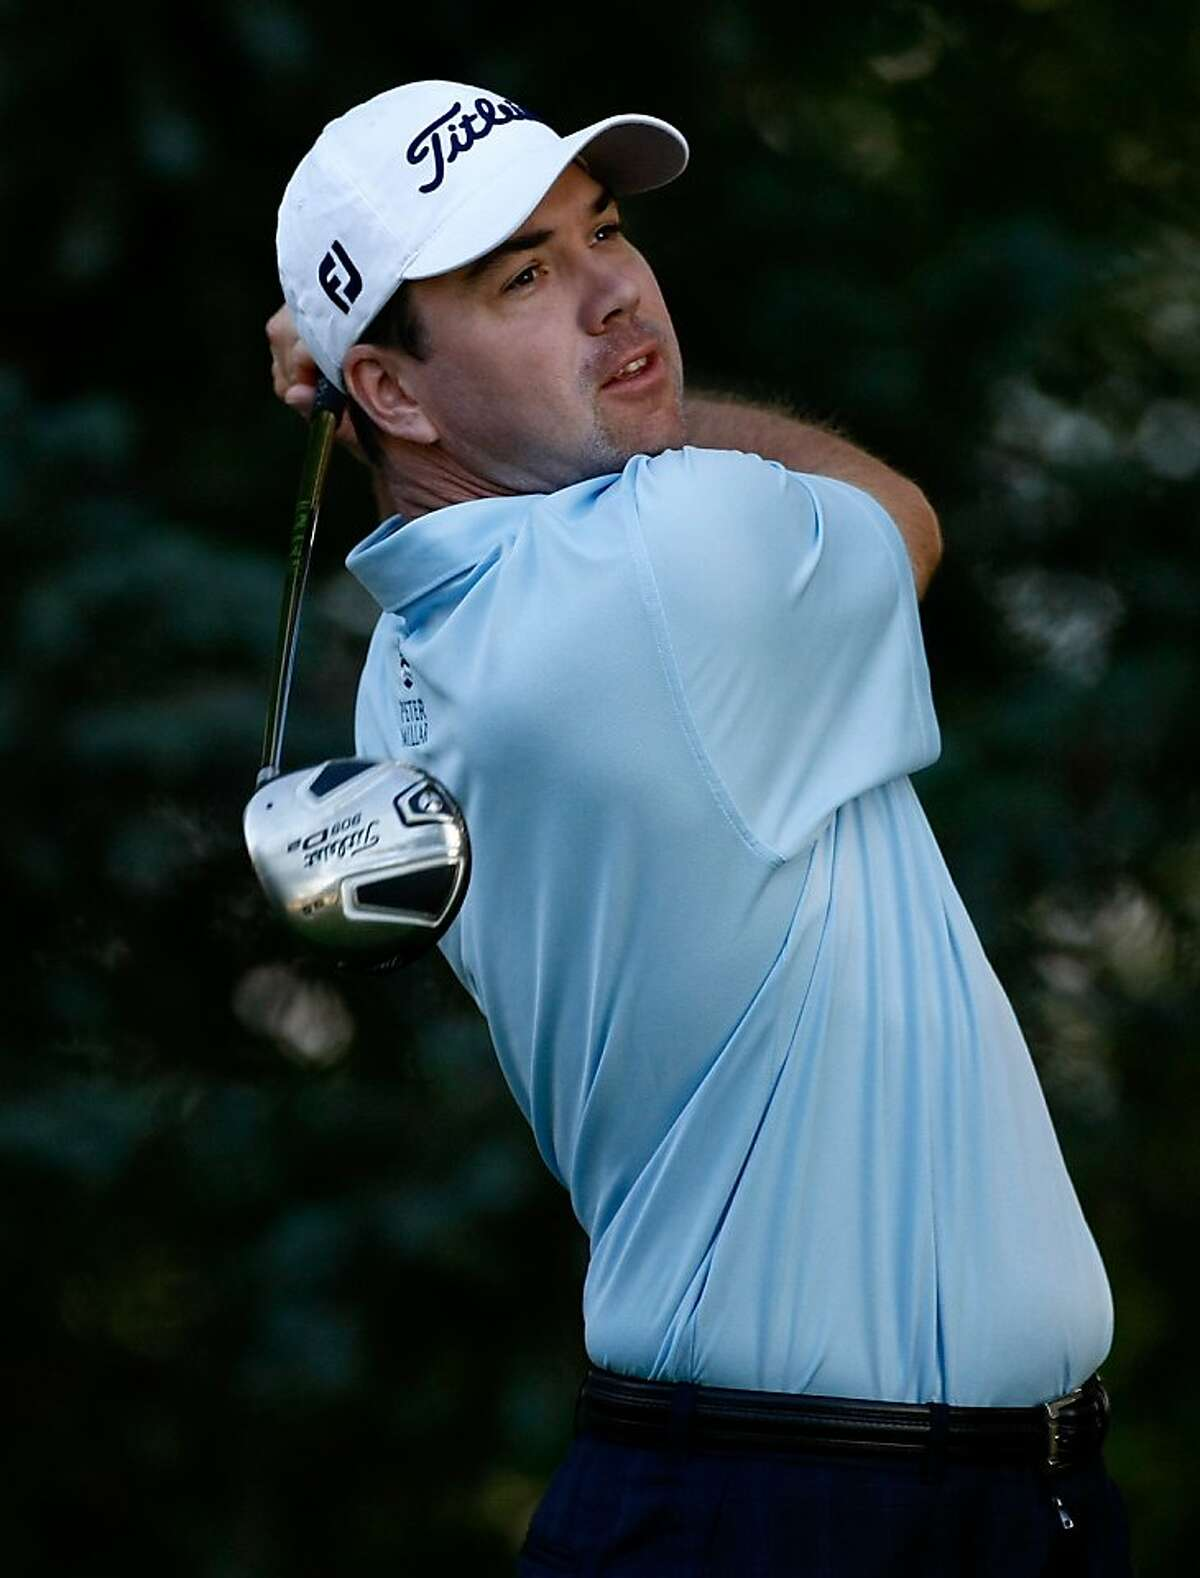 BOISE, ID - SEPTEMBER 17: Aaron Oberholser tees off on the 2nd hole during the first round of the Albertson's Boise Open at Hillcrest Country Club on September 17, 2009 in Boise, Idaho. (Photo by Jonathan Ferrey/Getty Images)